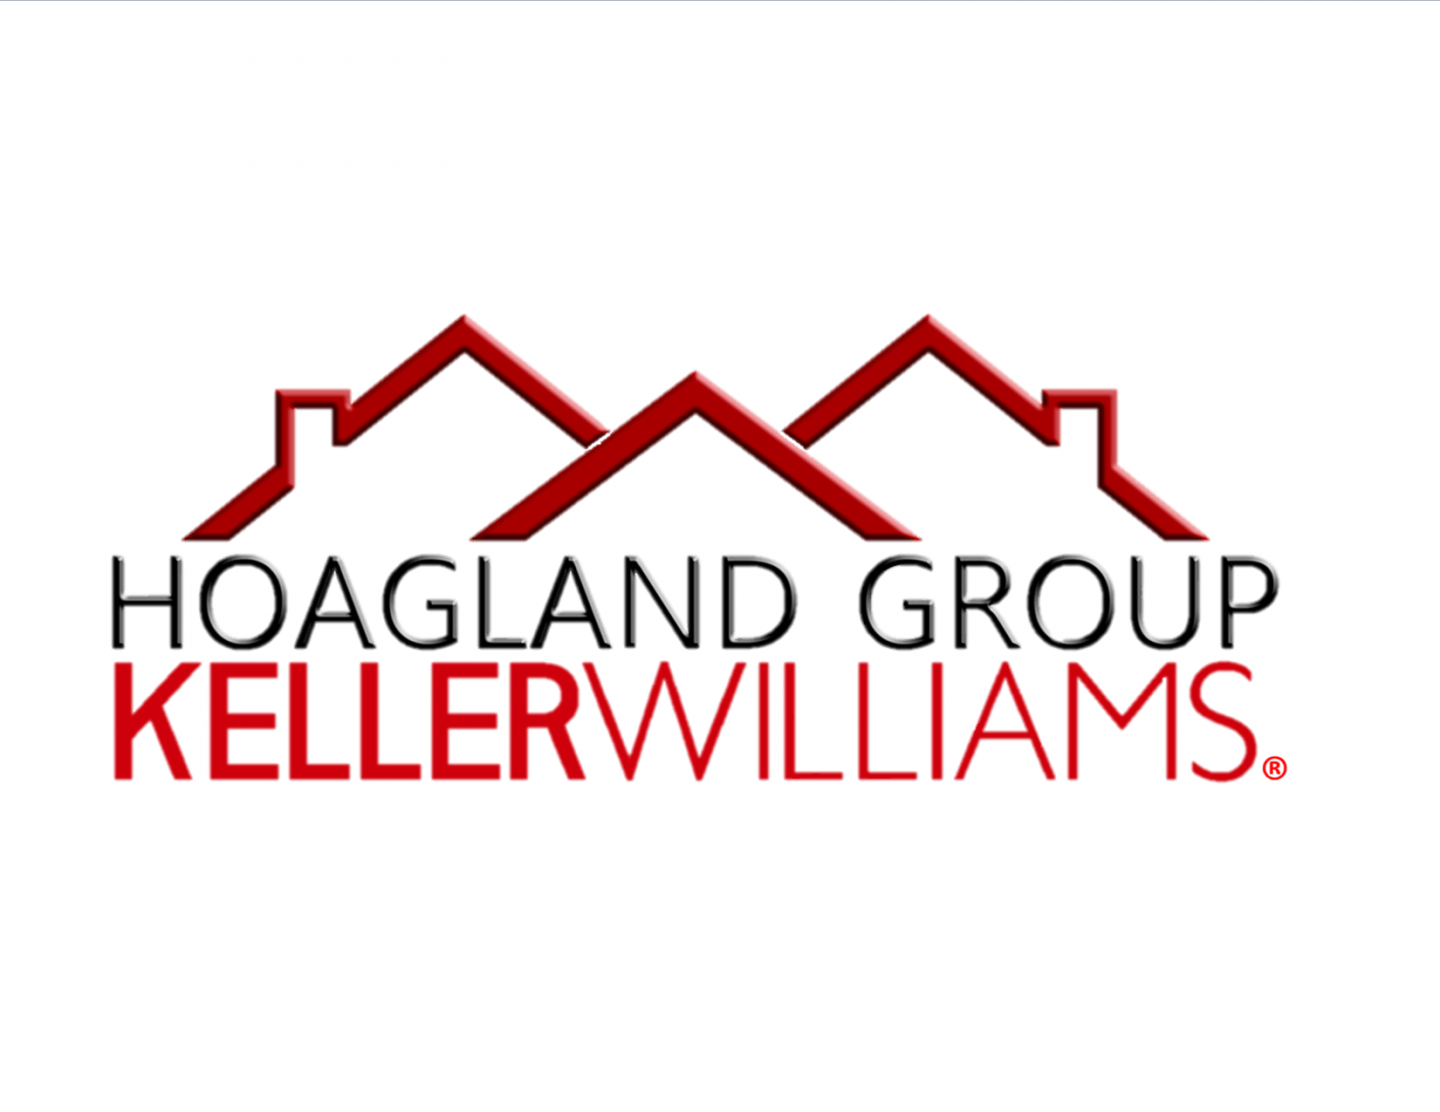 The Hoagland Group